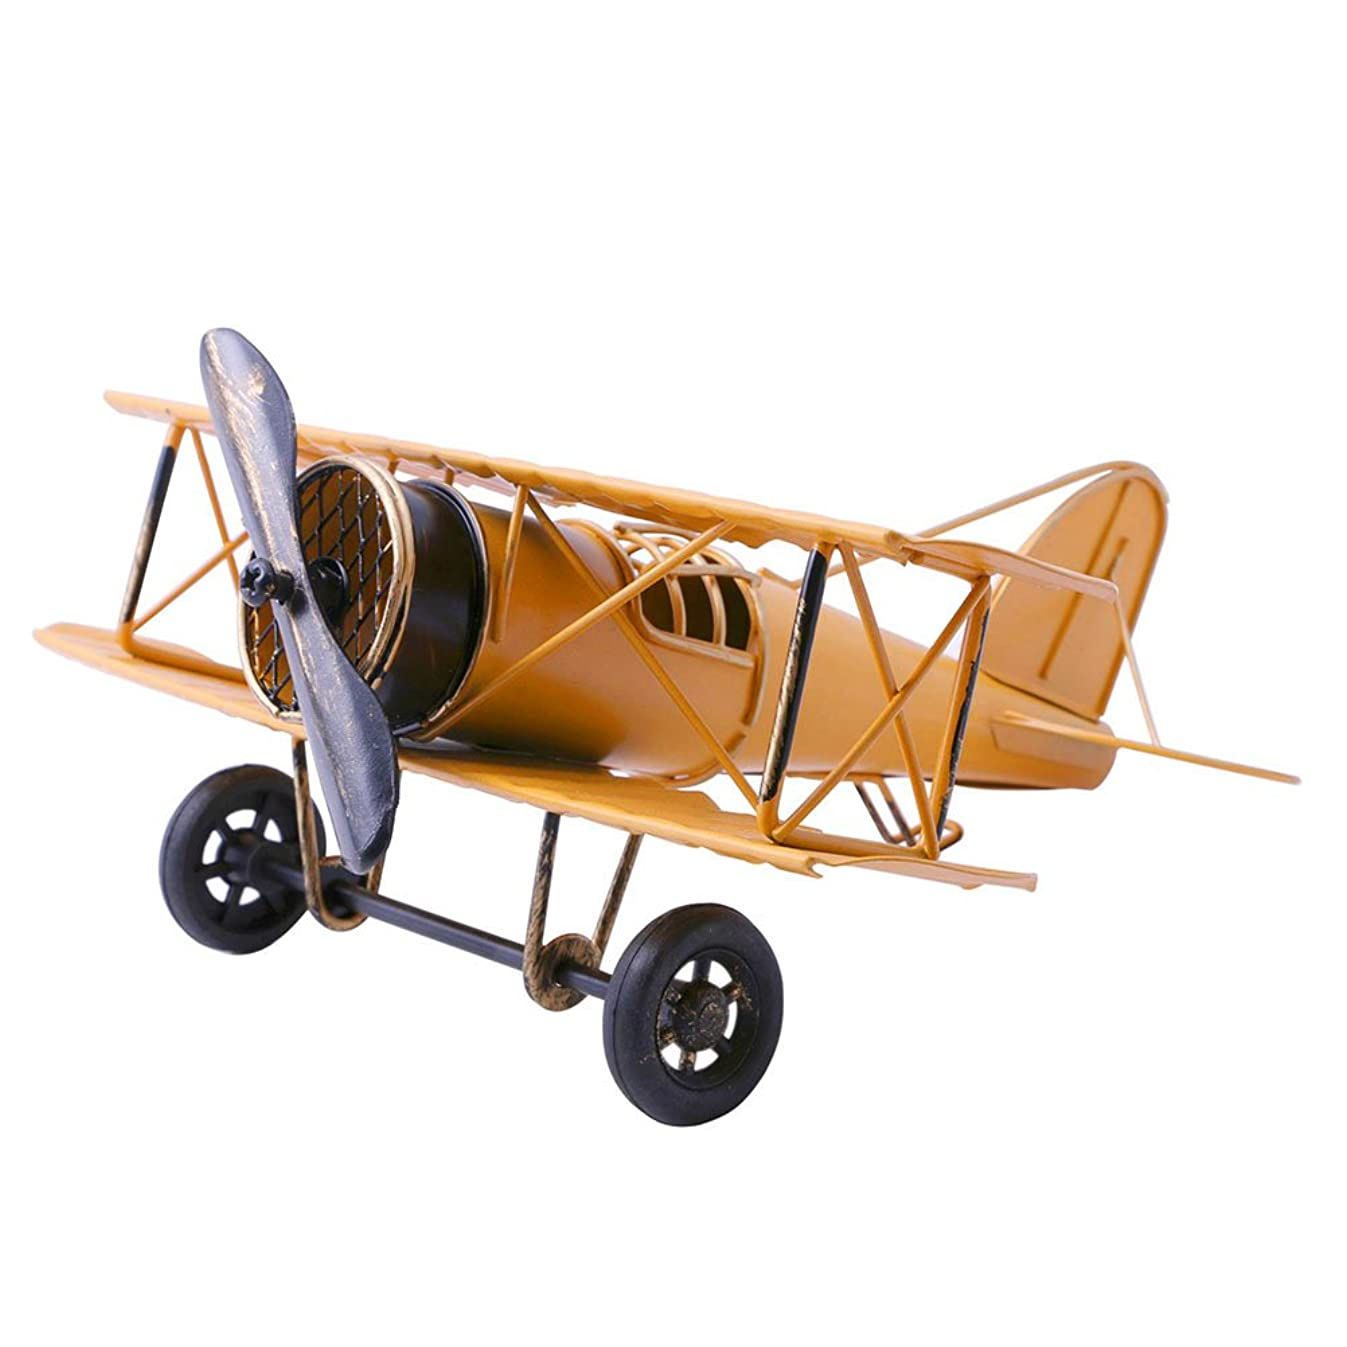 Vintage Airplane Model Metal Handicraft, Wrought Iron Aircraft Biplane, for Photo Props/Christmas/Home Decor/Ornament (Yellow)